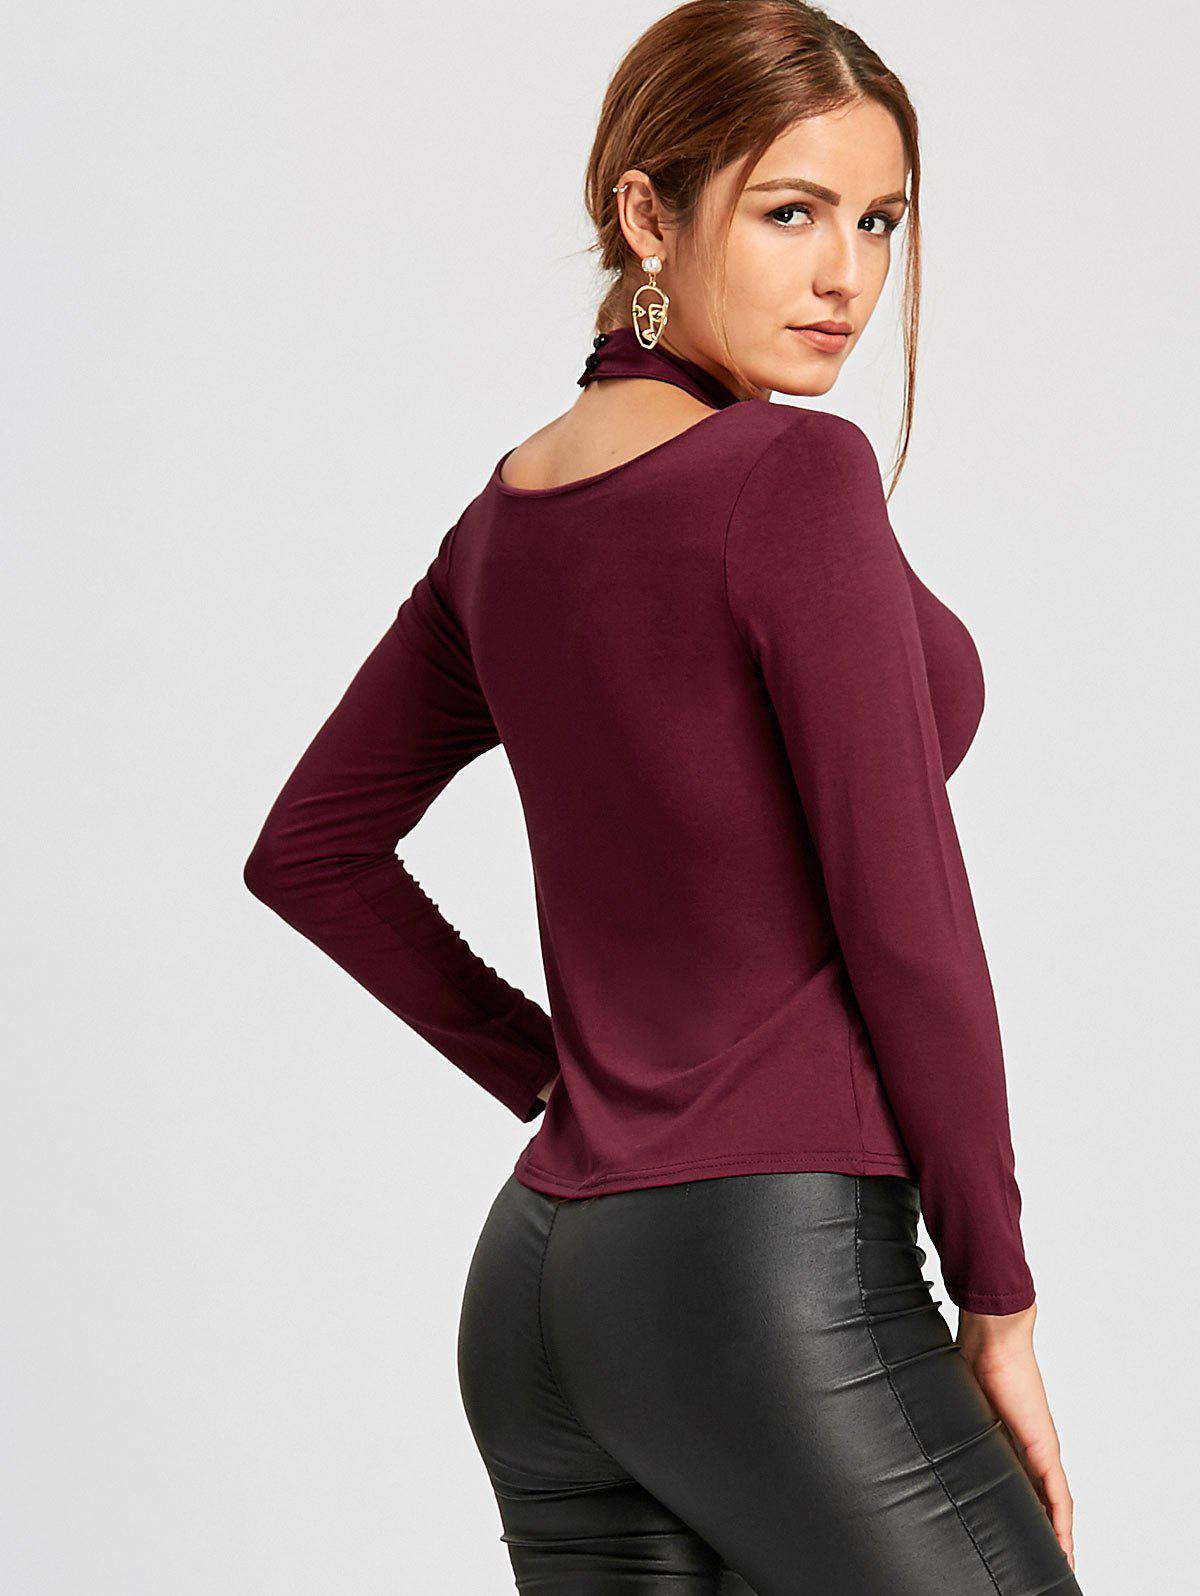 Cut Out High Neck T-shirt - WINE RED XL